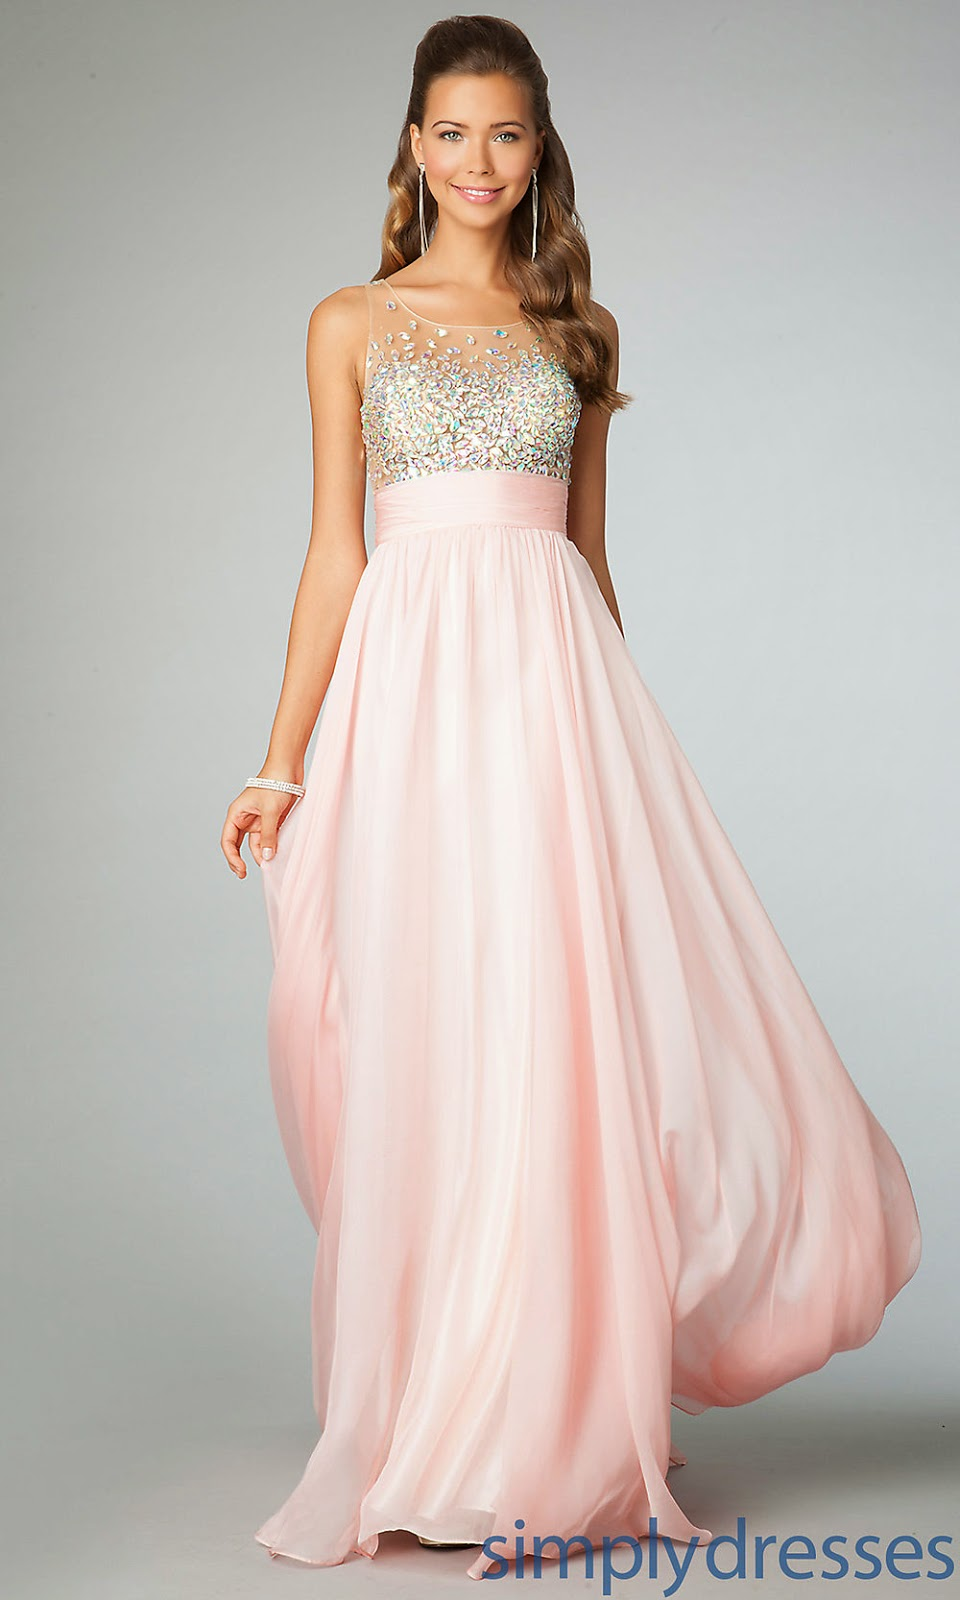 Ym Your Prom Dresses 59